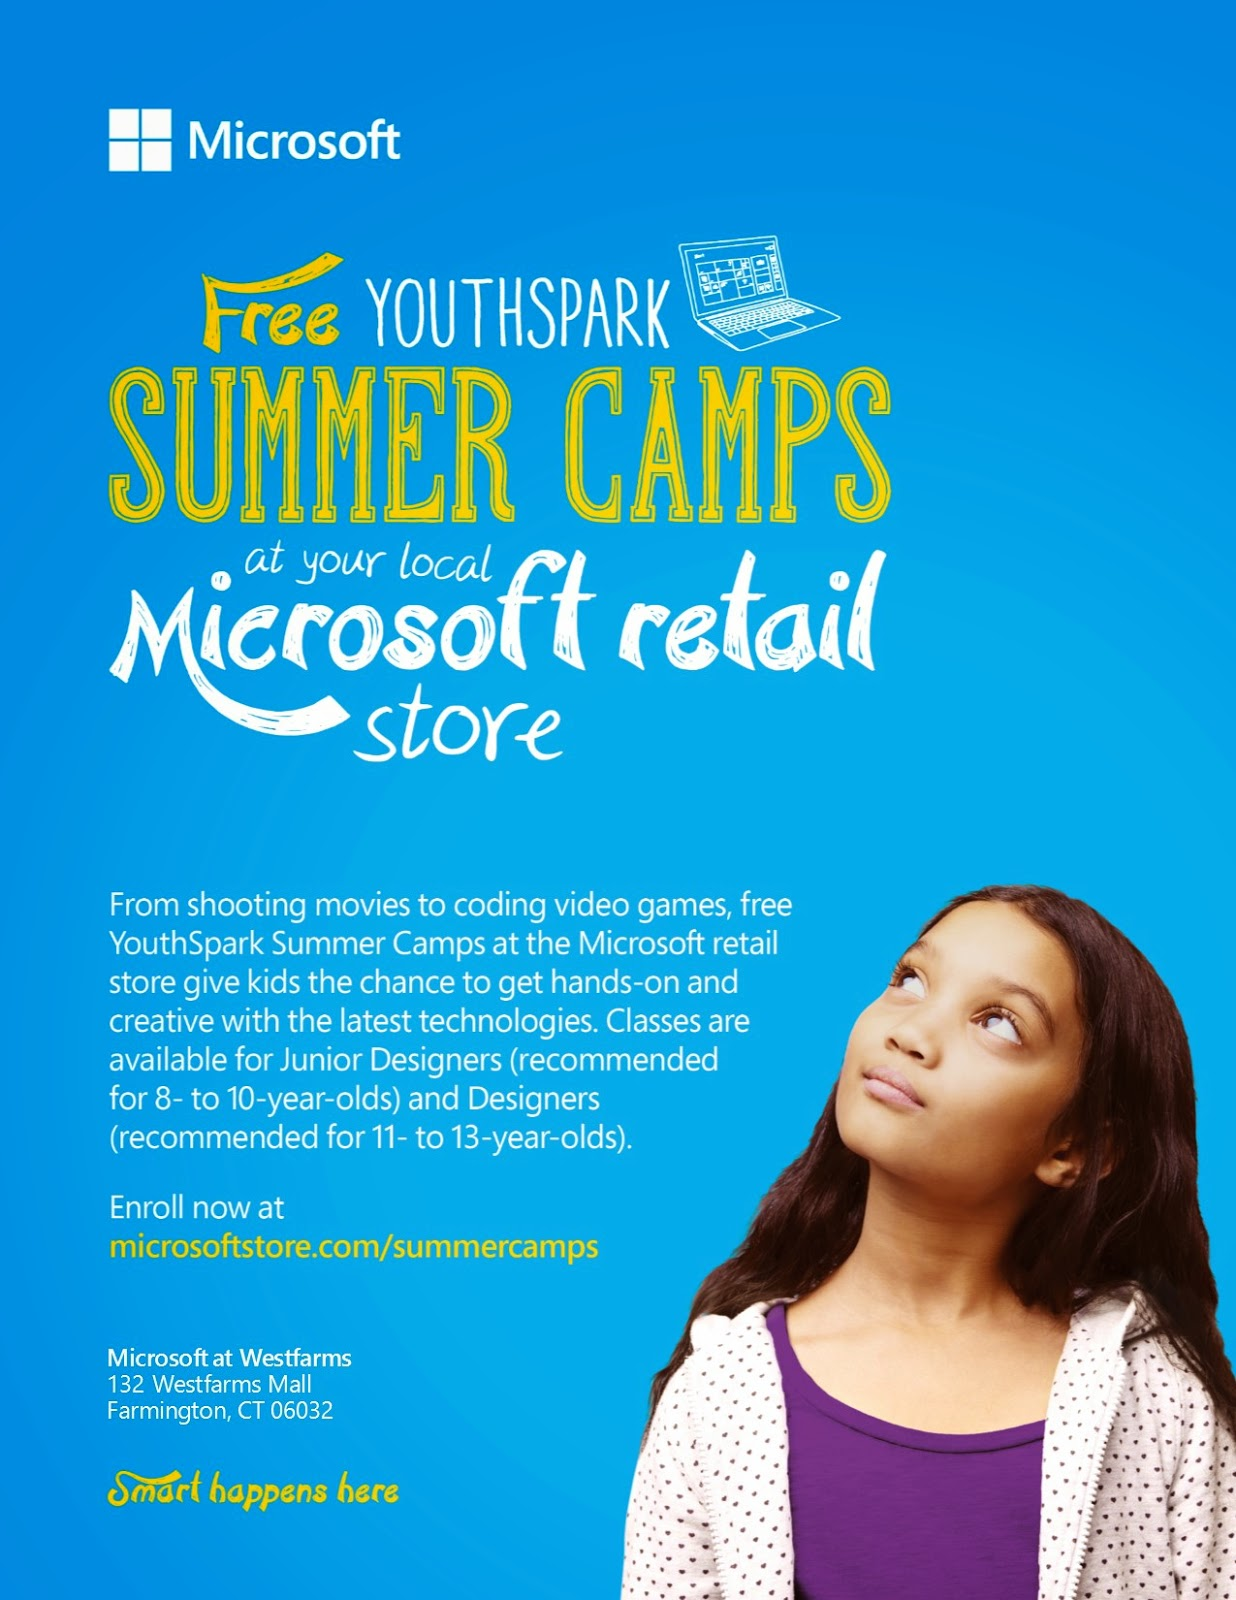 home place microsoft summer camp at the westfarms mall in ct here s a link to a able printable flyer to share > microsoft camp flyer